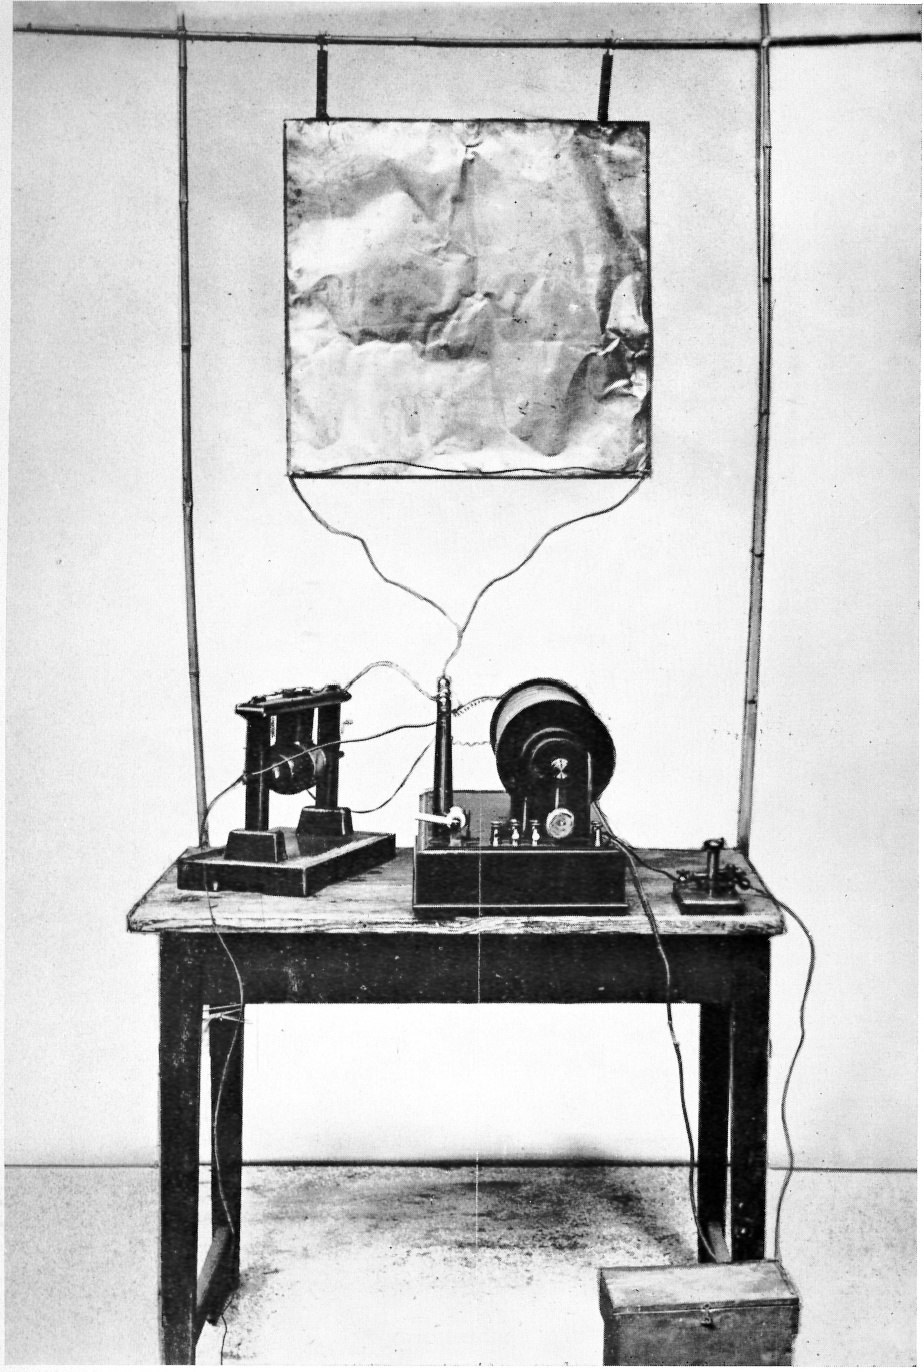 Marconi's first radio transmitter